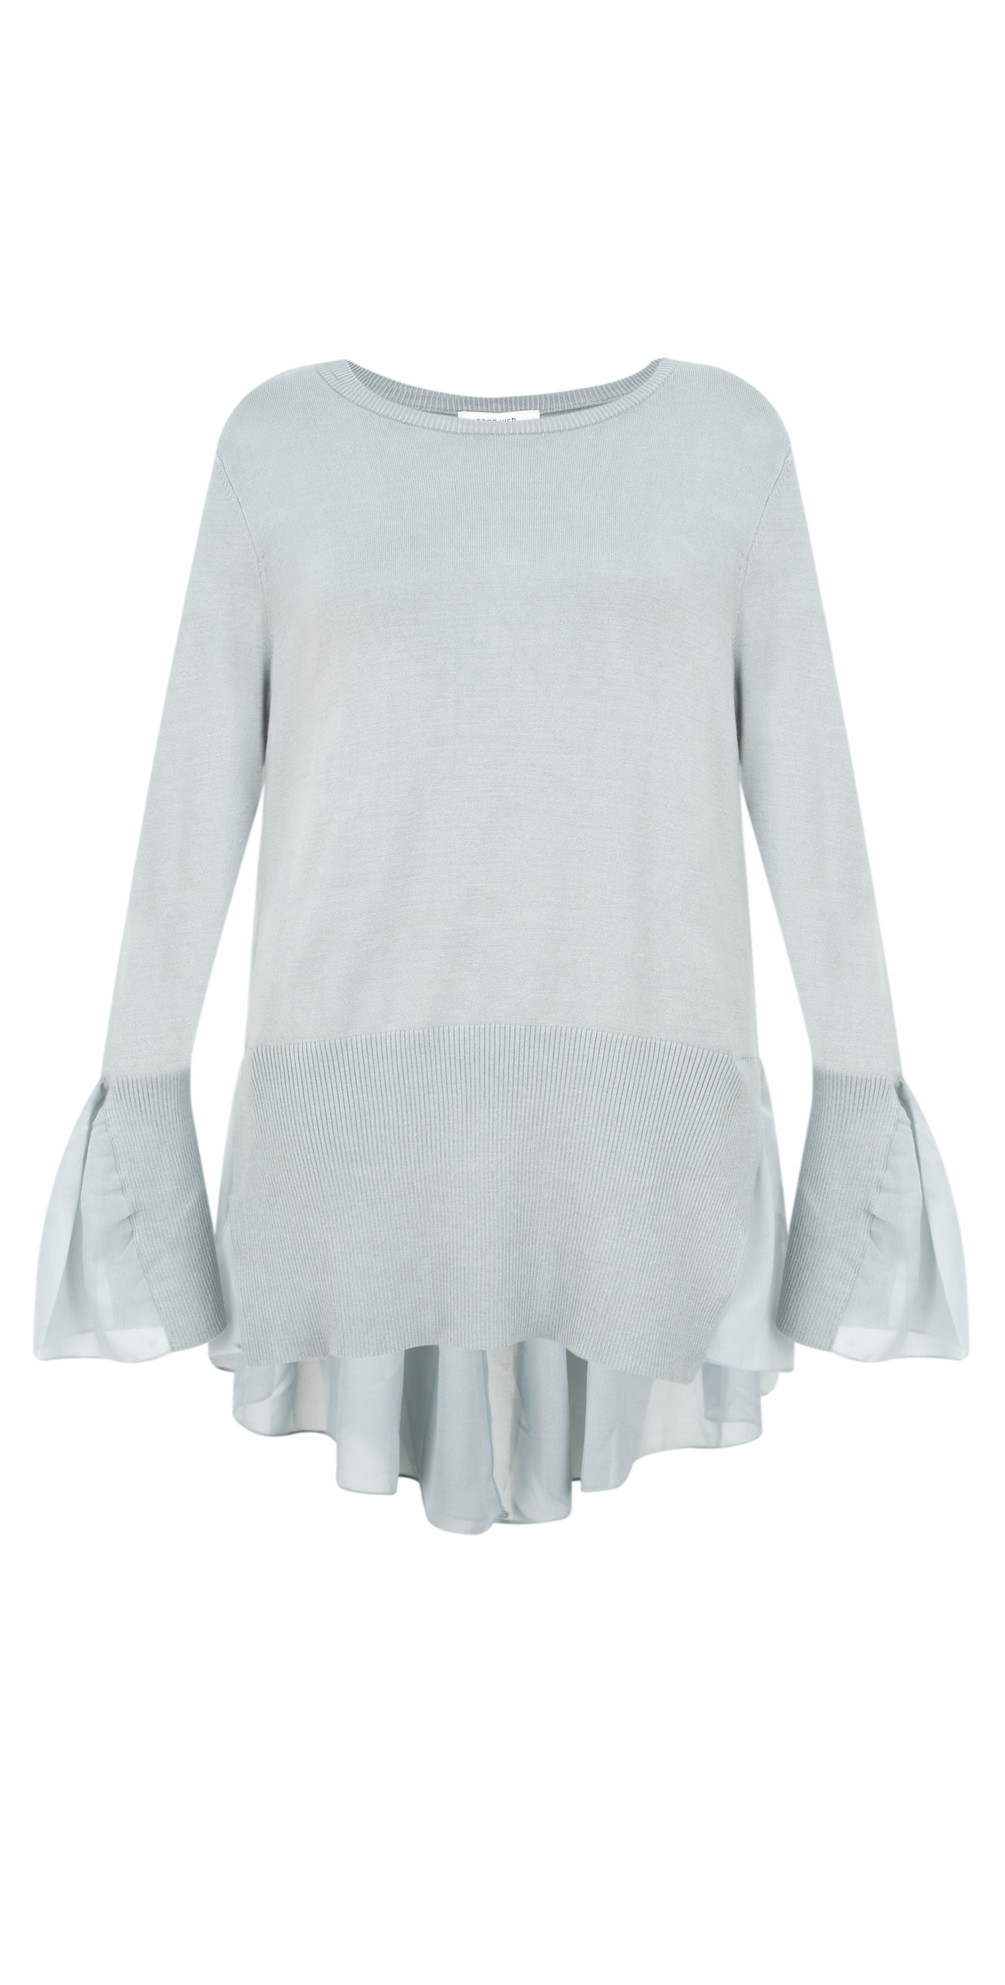 Frill Detail Thin Knit Jumper main image